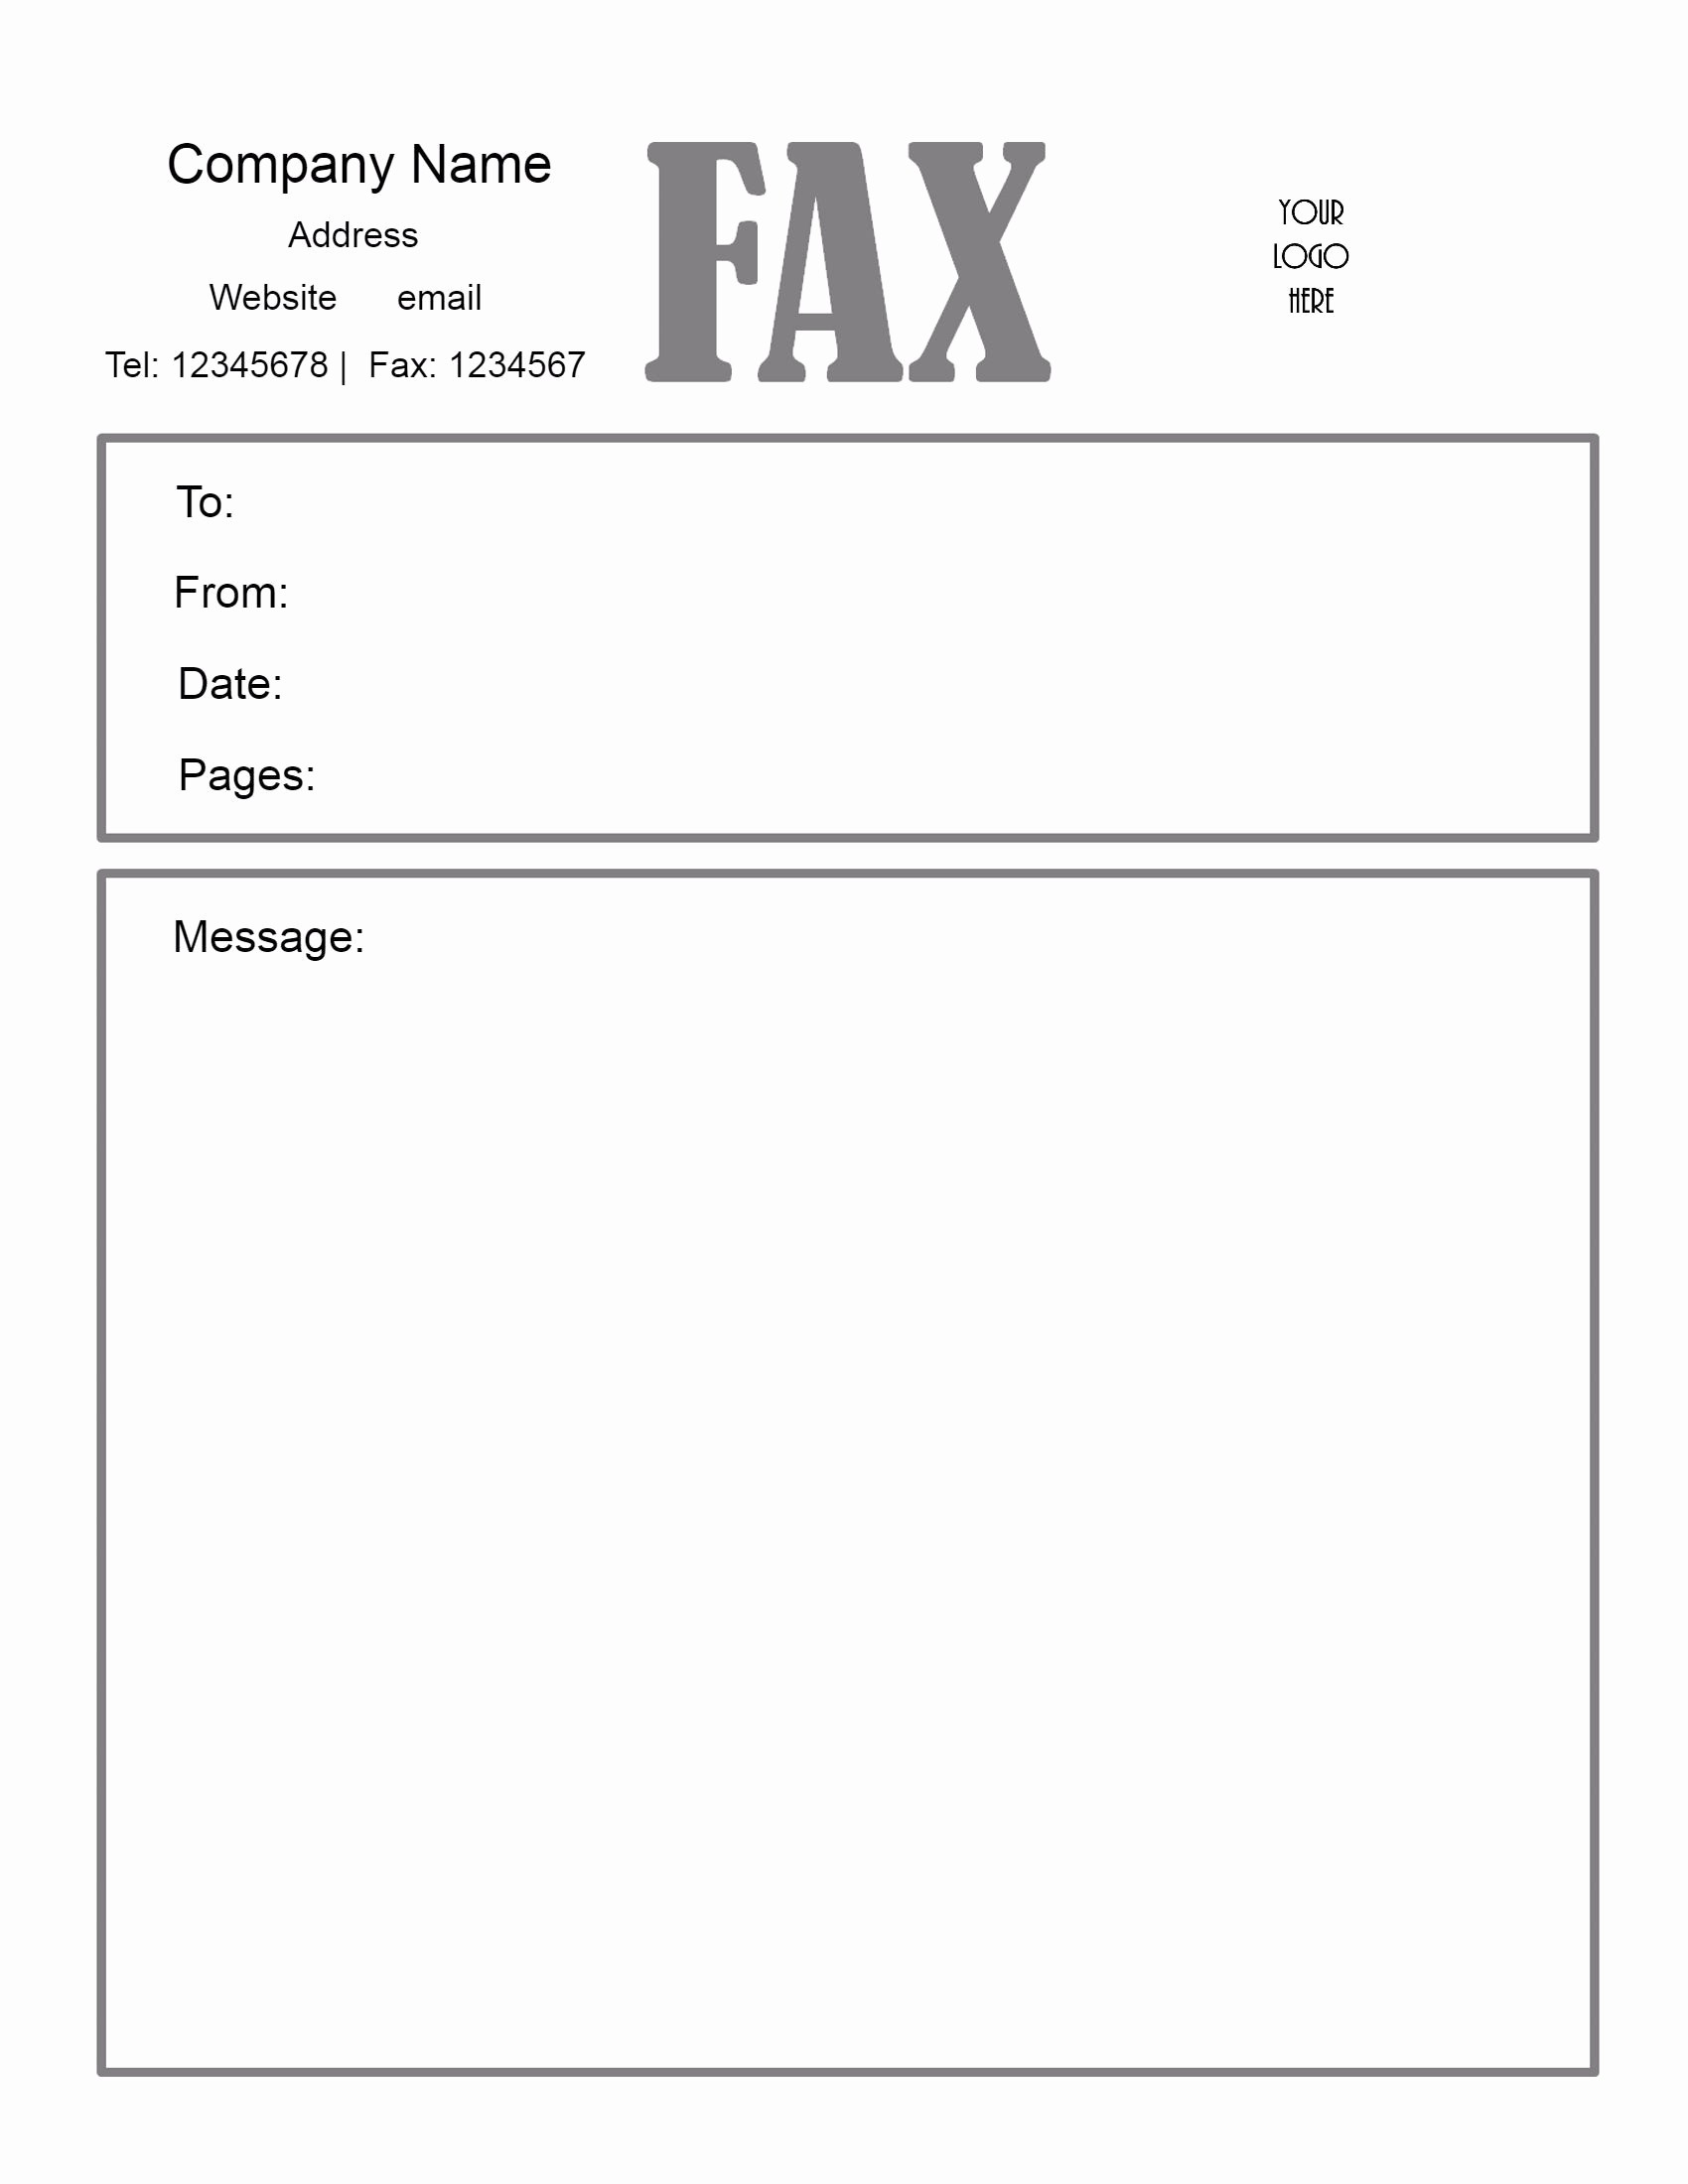 Print A Fax Cover Sheet Fresh Fax Cover Sheet – Download Fax Cover Sheet Fax Cover